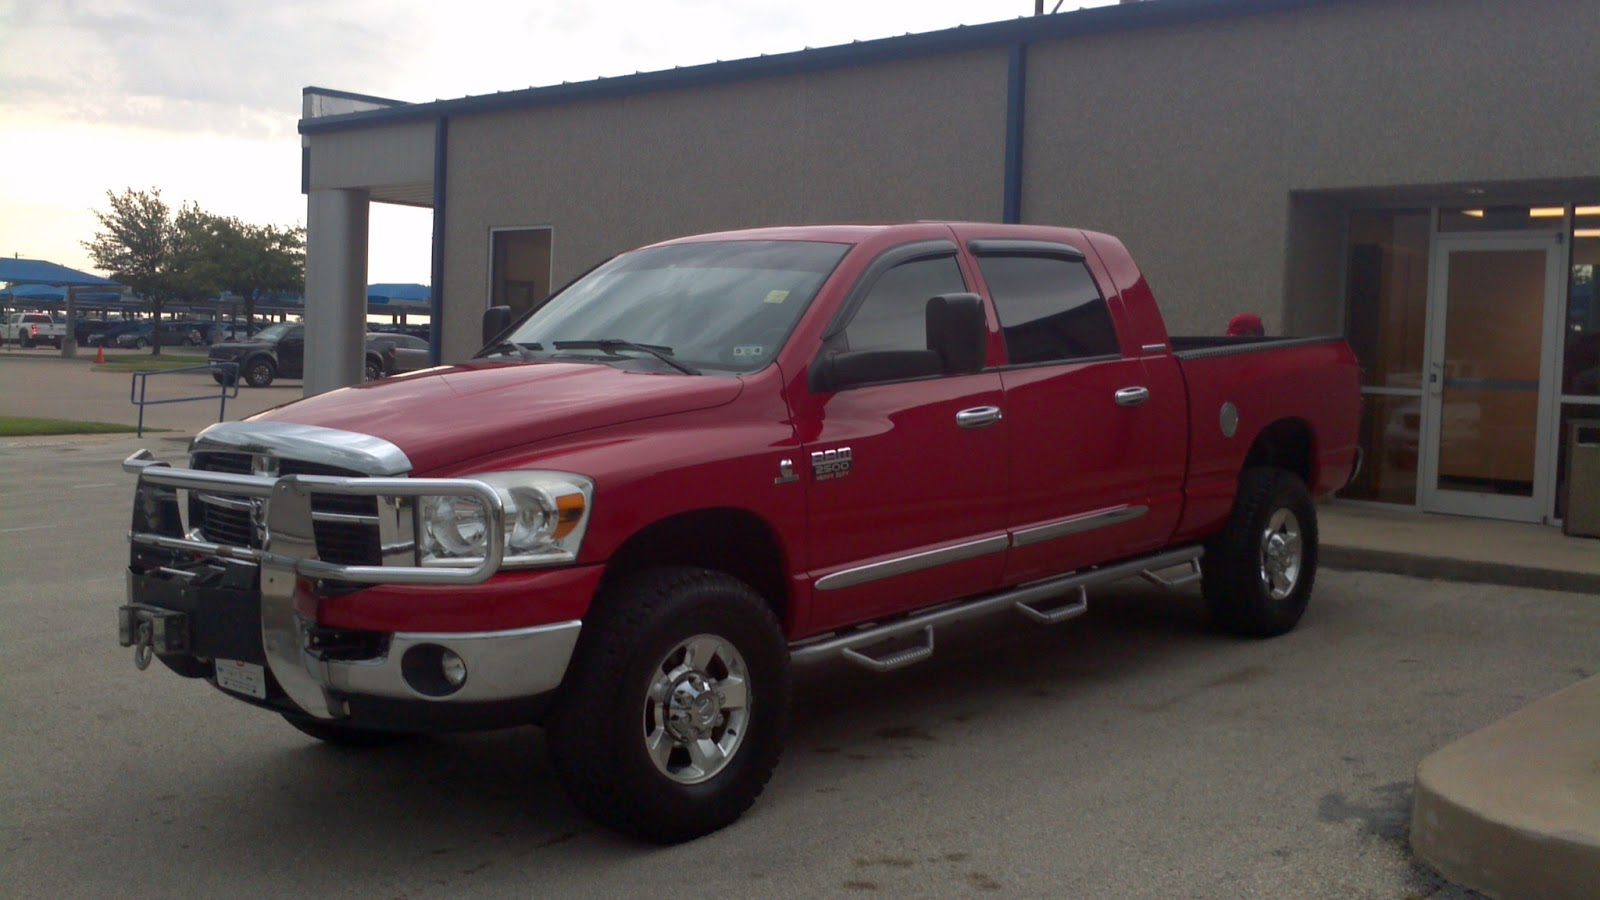 2013 dodge ram 2500 mega cab for sale new in dallas tx autos post. Black Bedroom Furniture Sets. Home Design Ideas